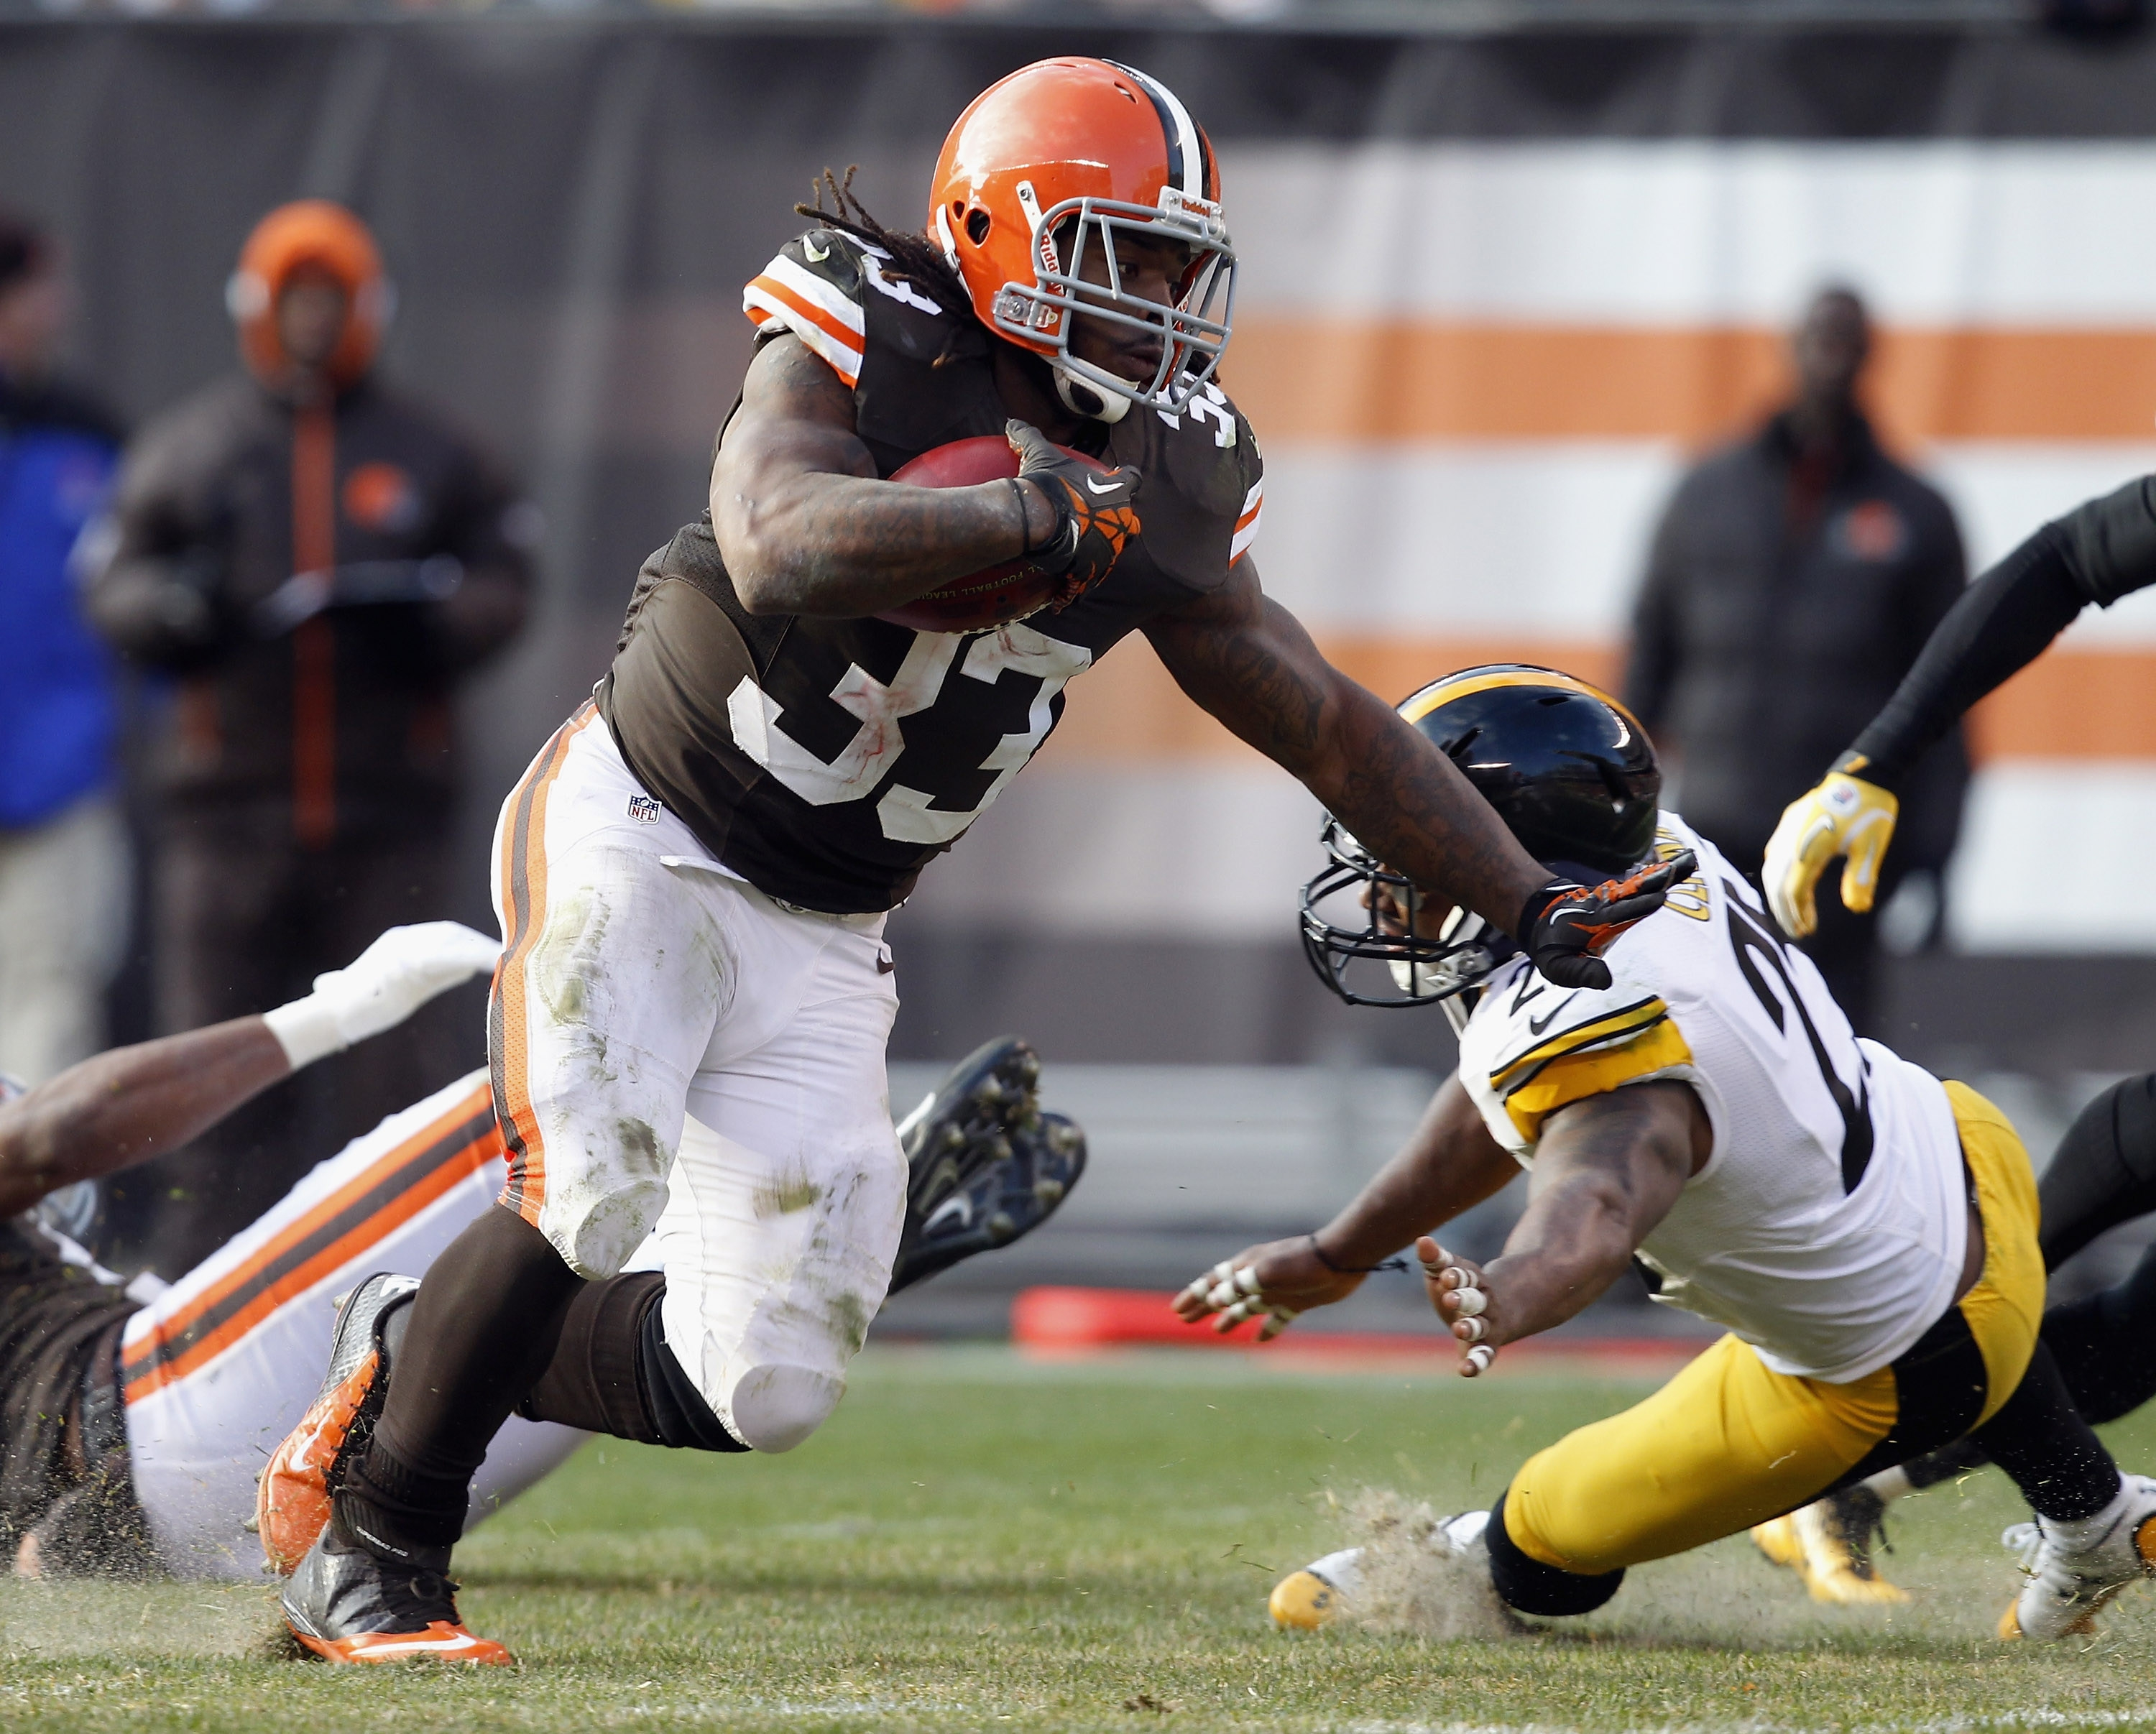 Cleveland running back Trent Richardson has put up good fantasy numbers the past four games.